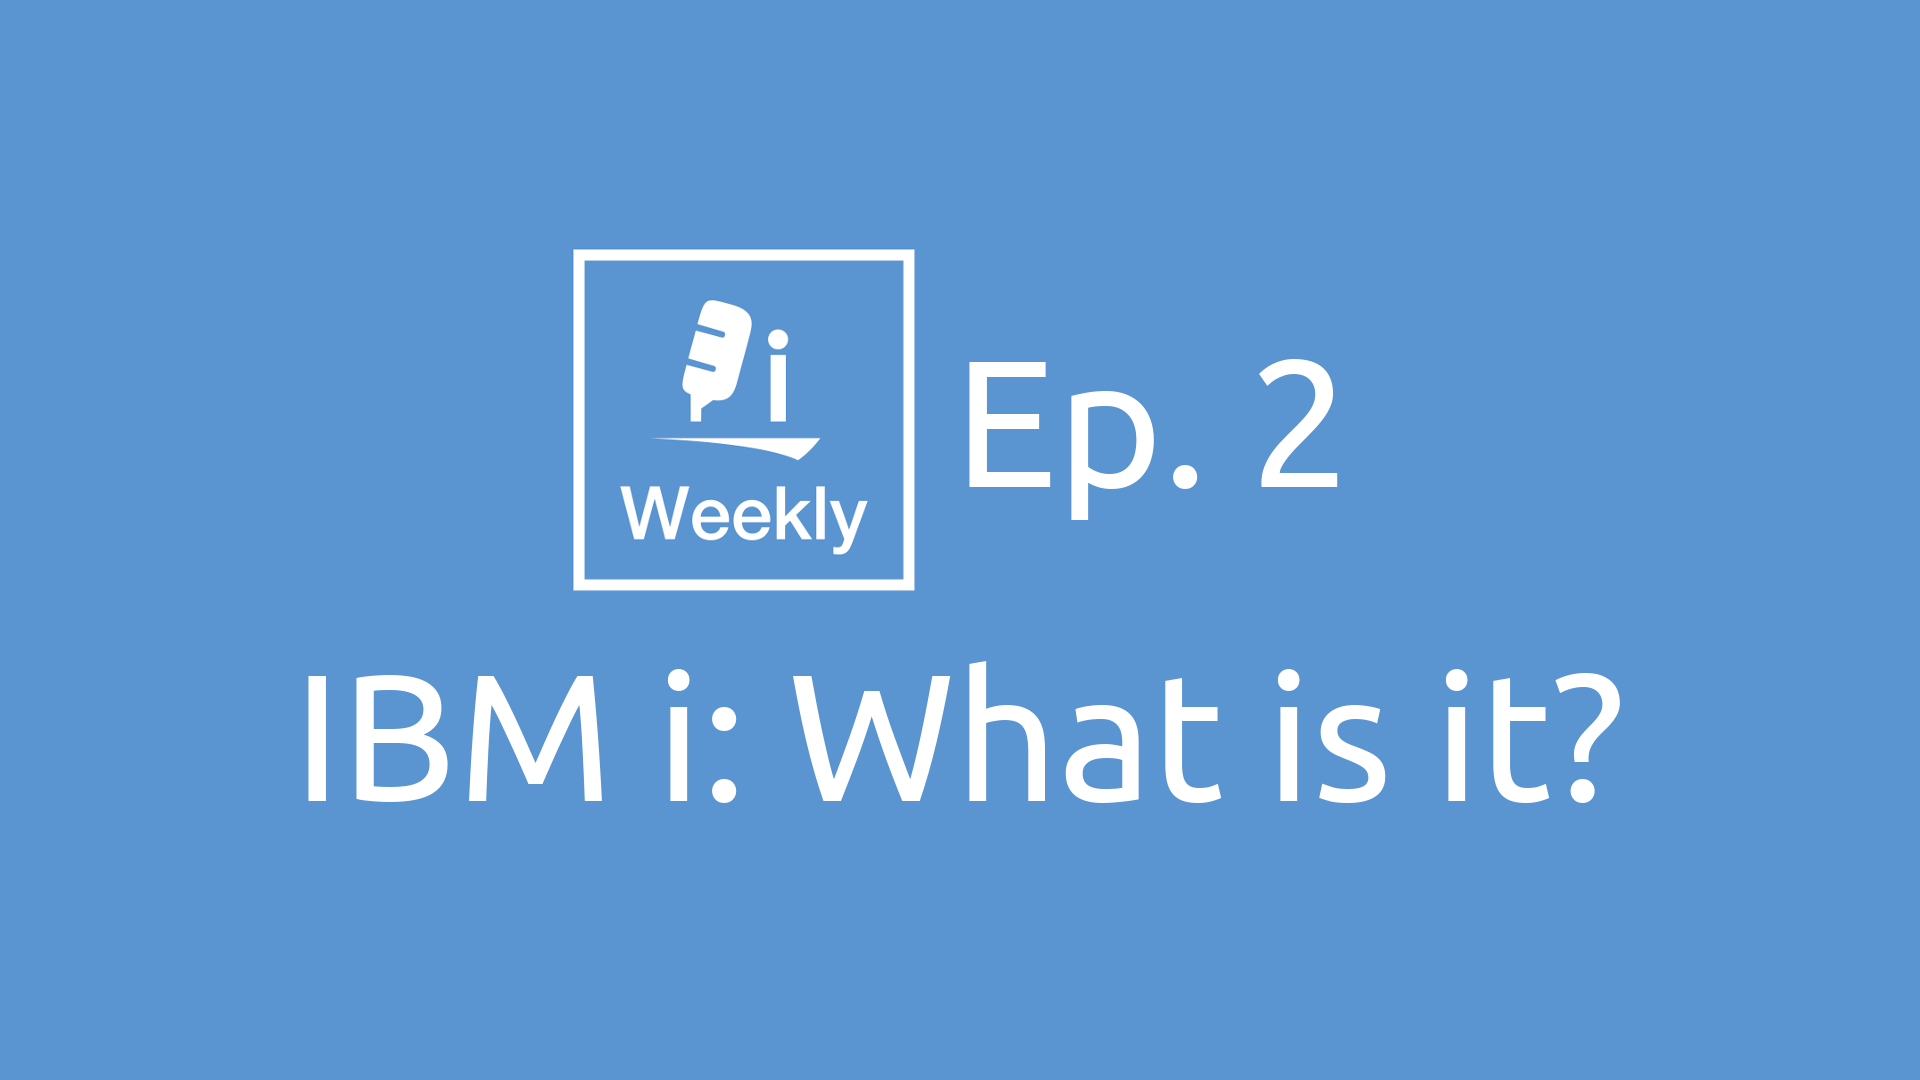 IBM i: What is it?